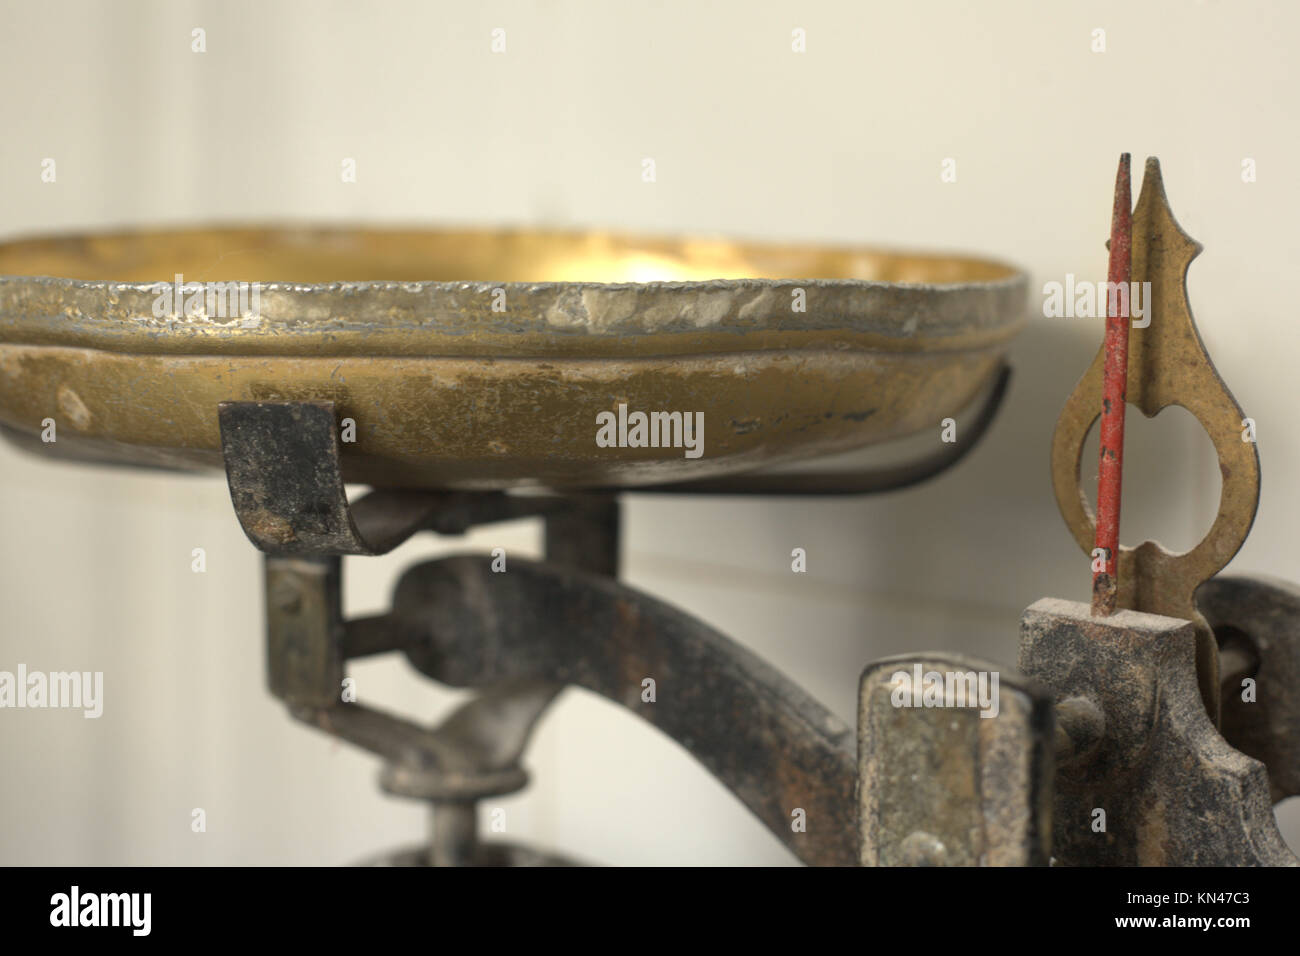 Old weighing scale for weighing dough in a bakery. - Stock Image